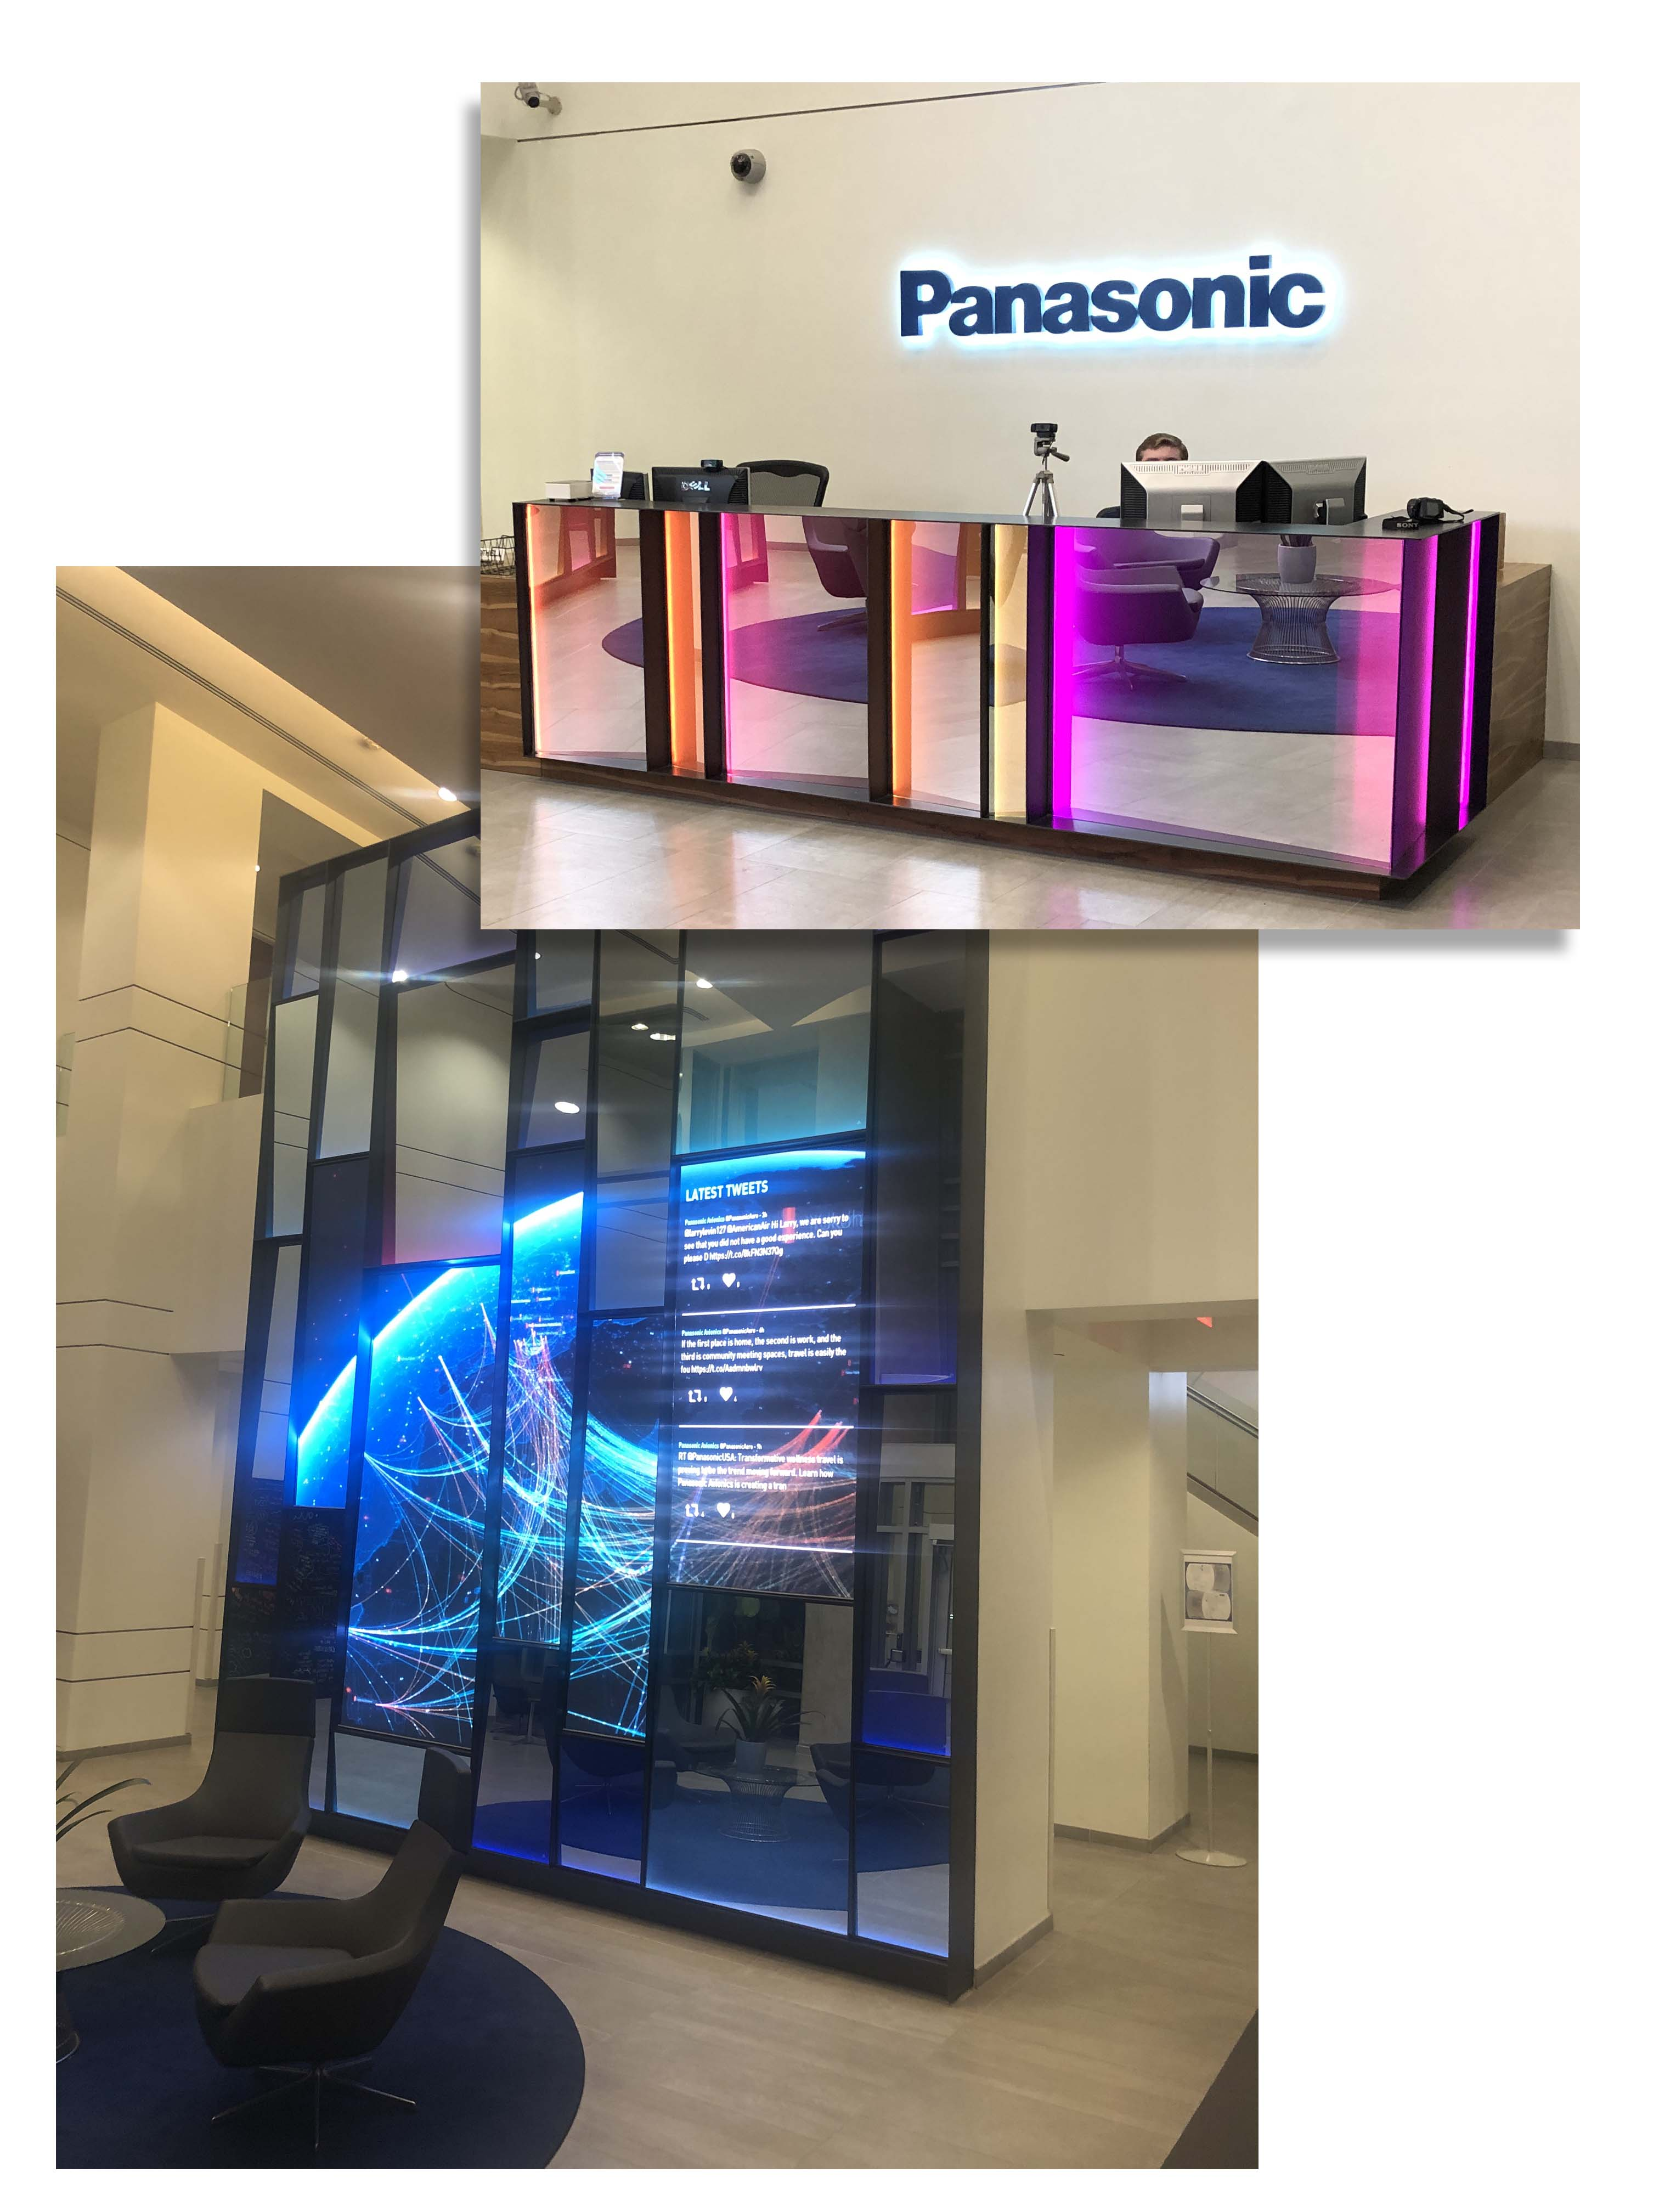 Panasonic Avionics LED installation